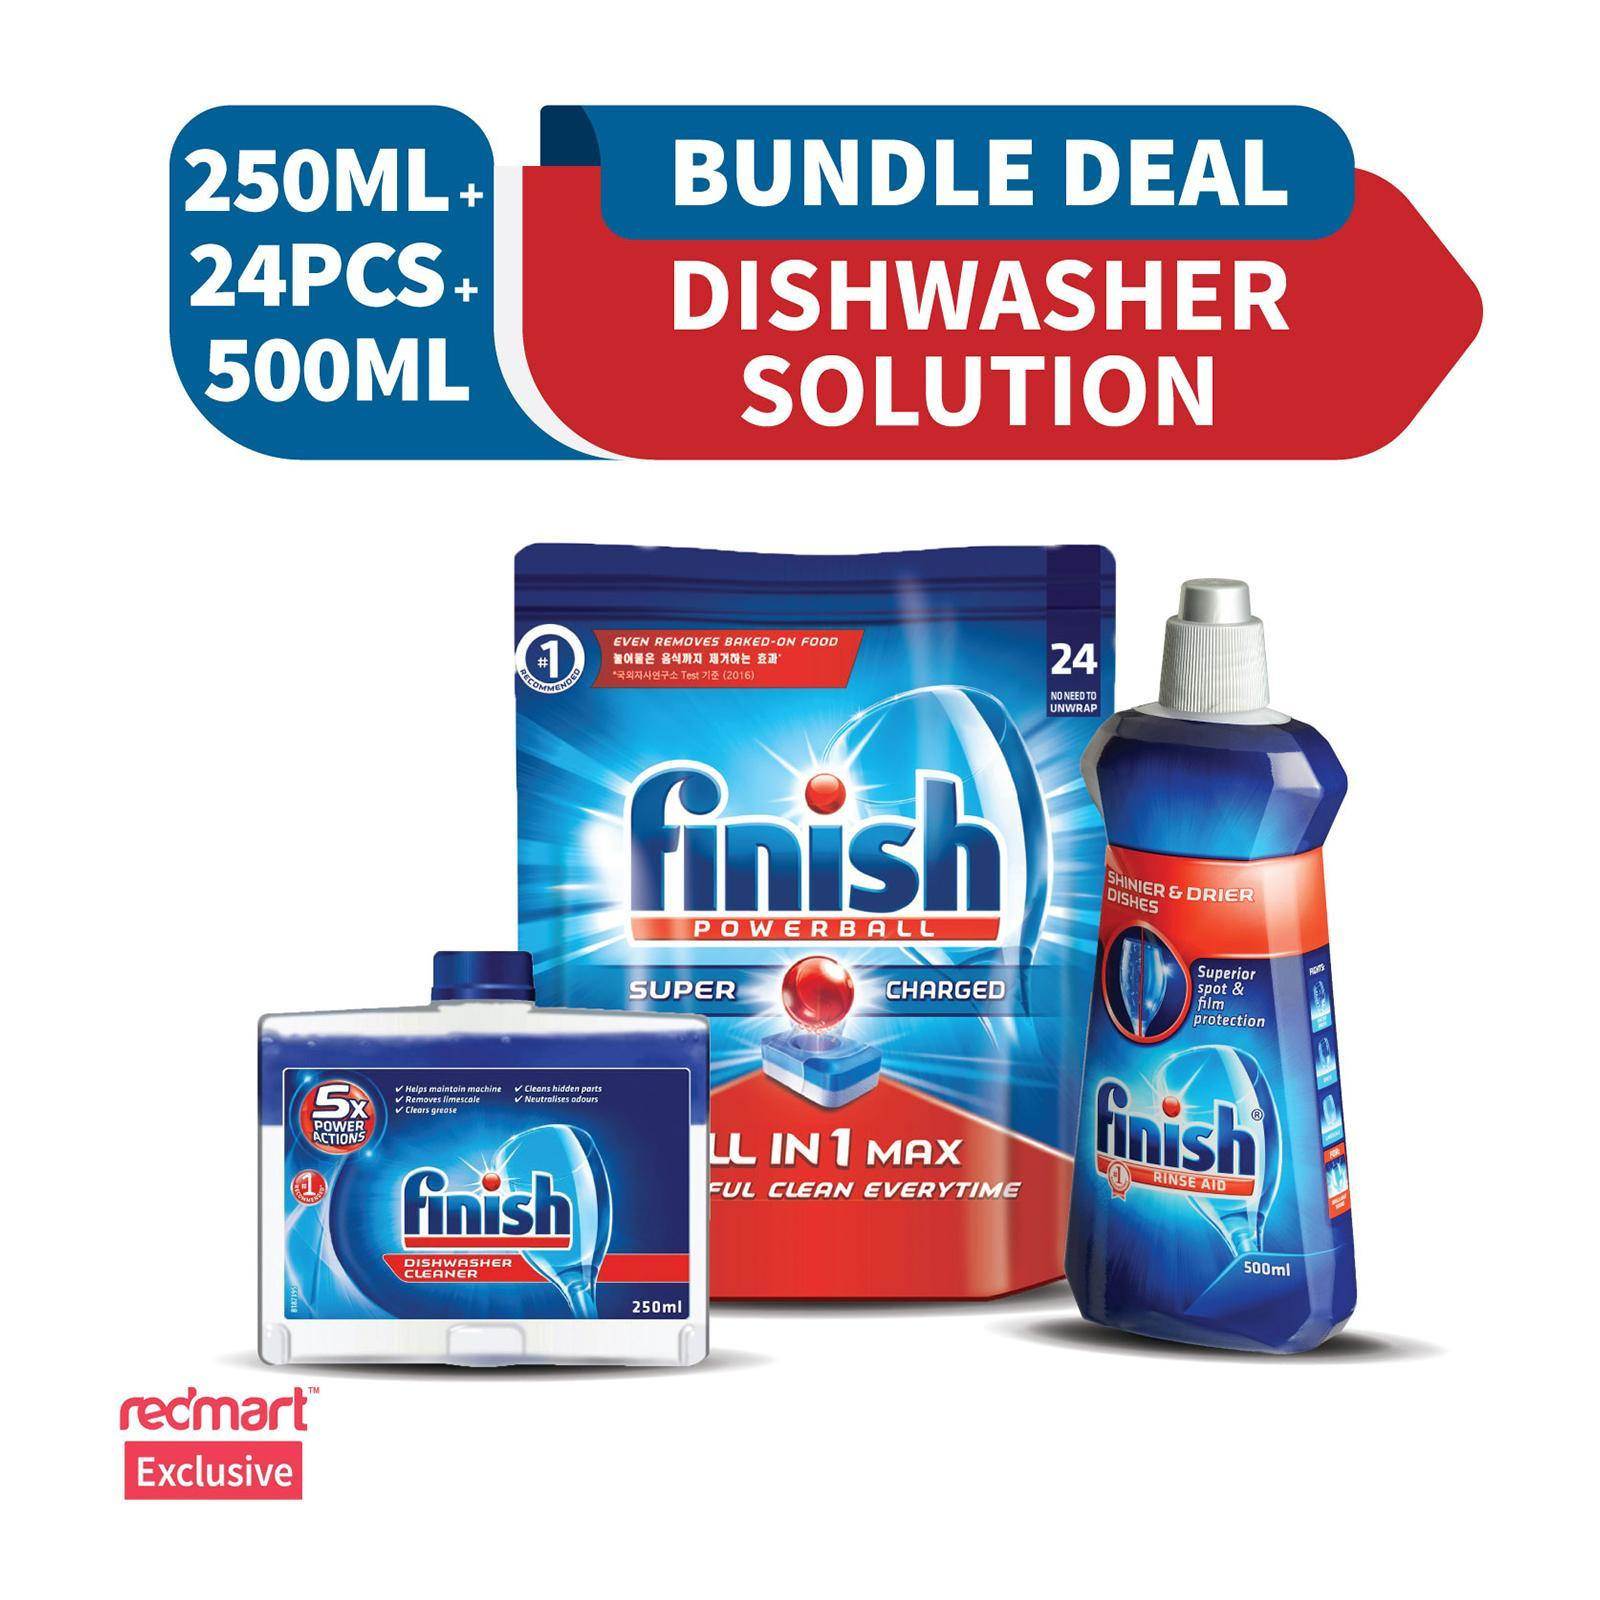 Finish All In One Max Super Charged PowerBall Dishwasher Tablets 24 Tablets And Finish Machine Dishwasher Cleaner 250 ML And Finish Diamond Shine Rinse Aid 500 ML